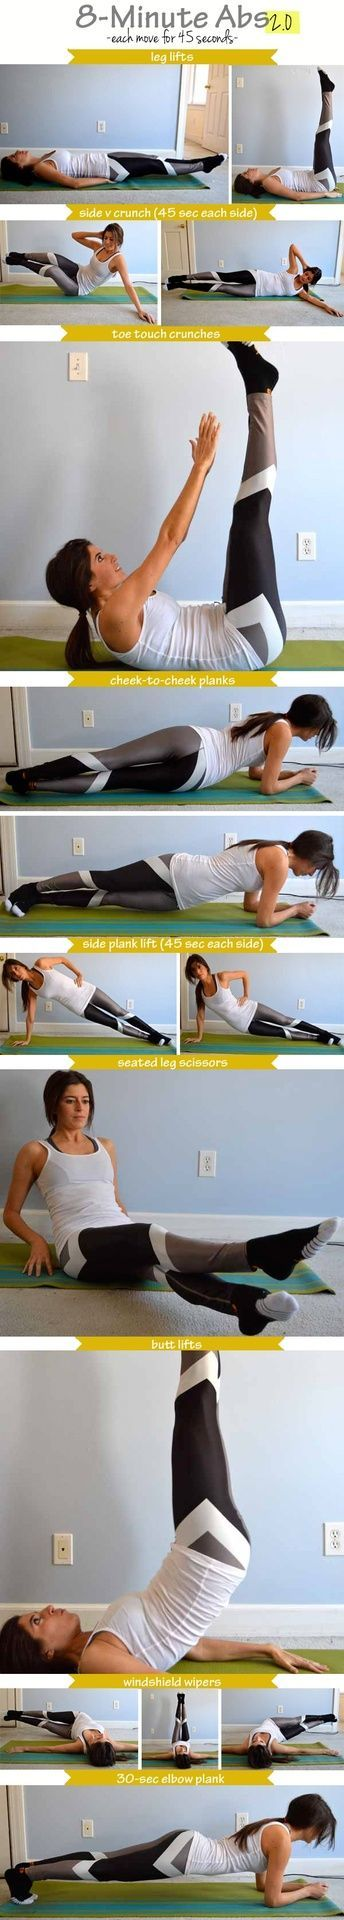 8-Minute Abs 2.0 frugal fitness tips, thrifty fitness tips